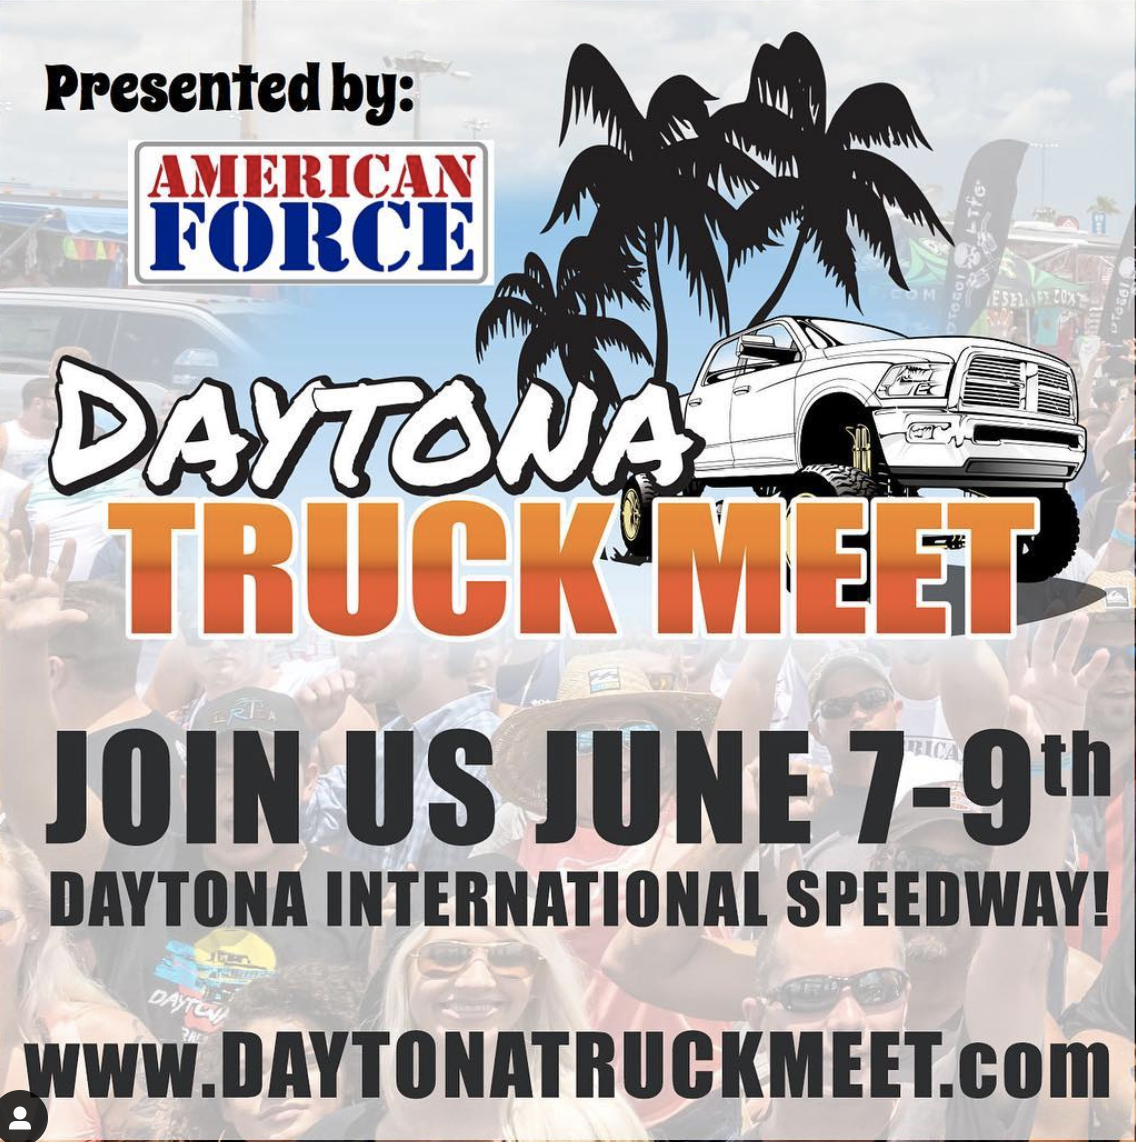 Daytona Truck Meet 2019